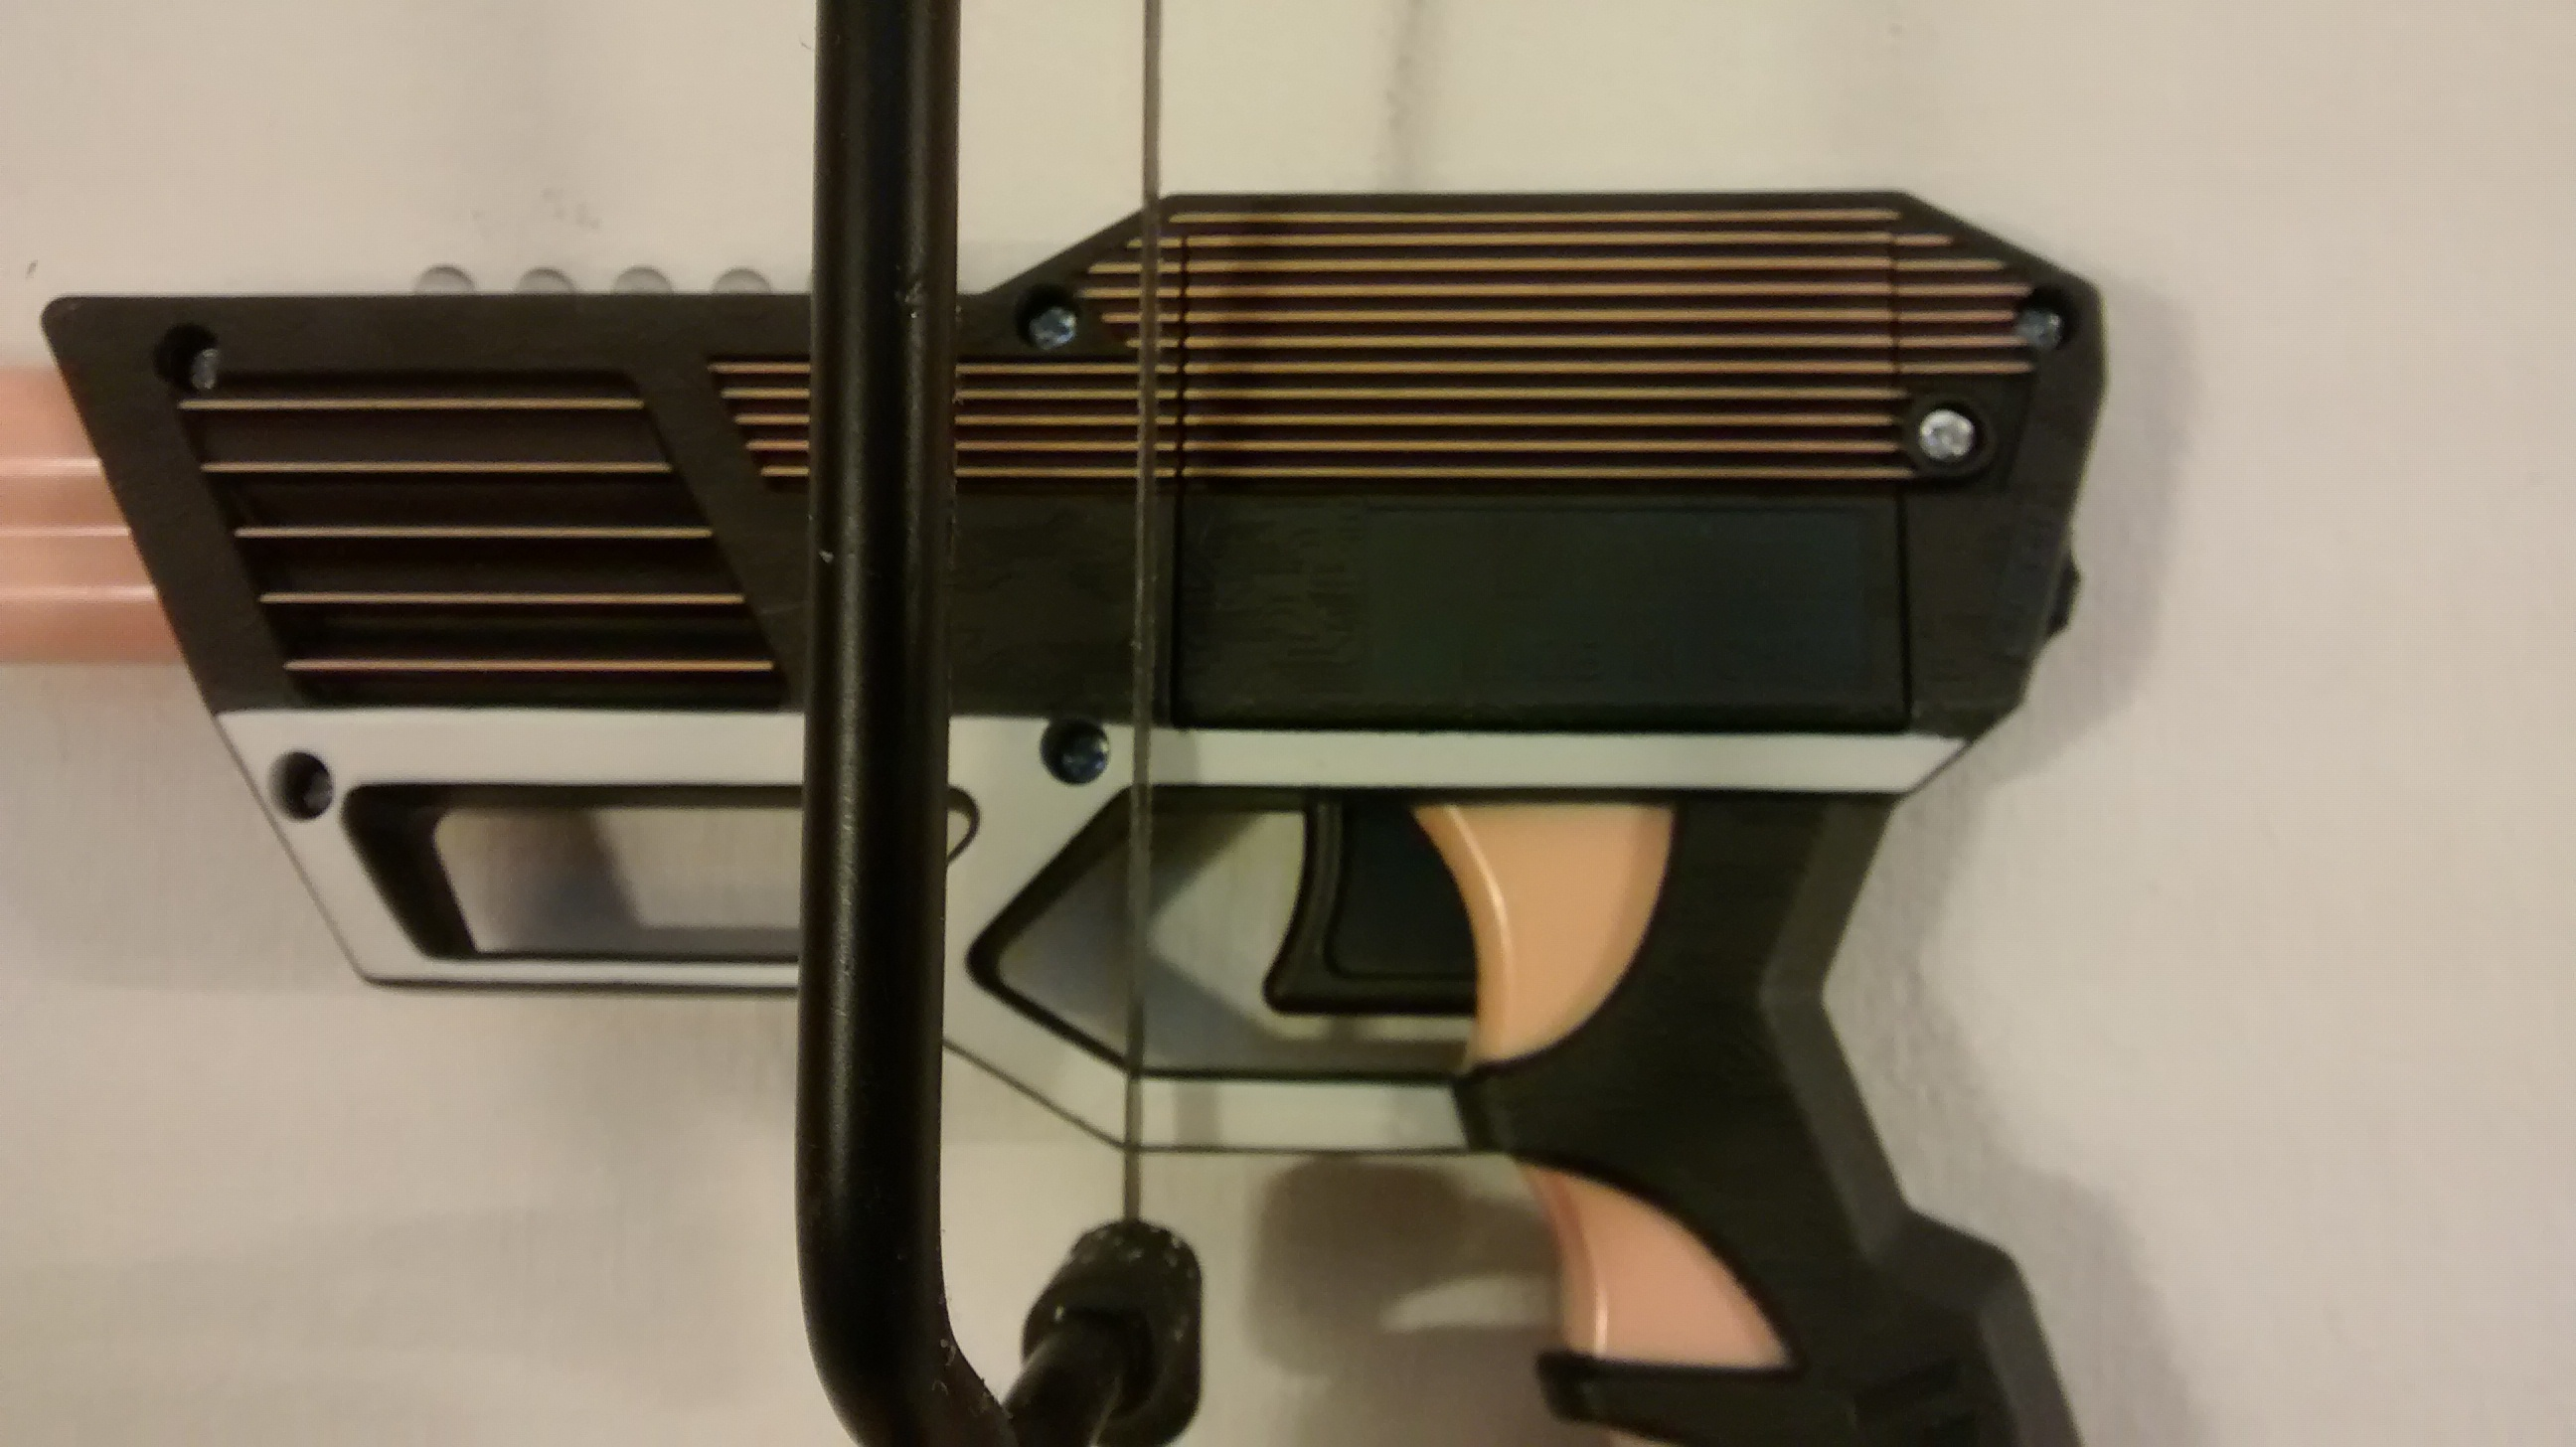 Picture of Modifying the Gun Casing for Mounting on Our Drone